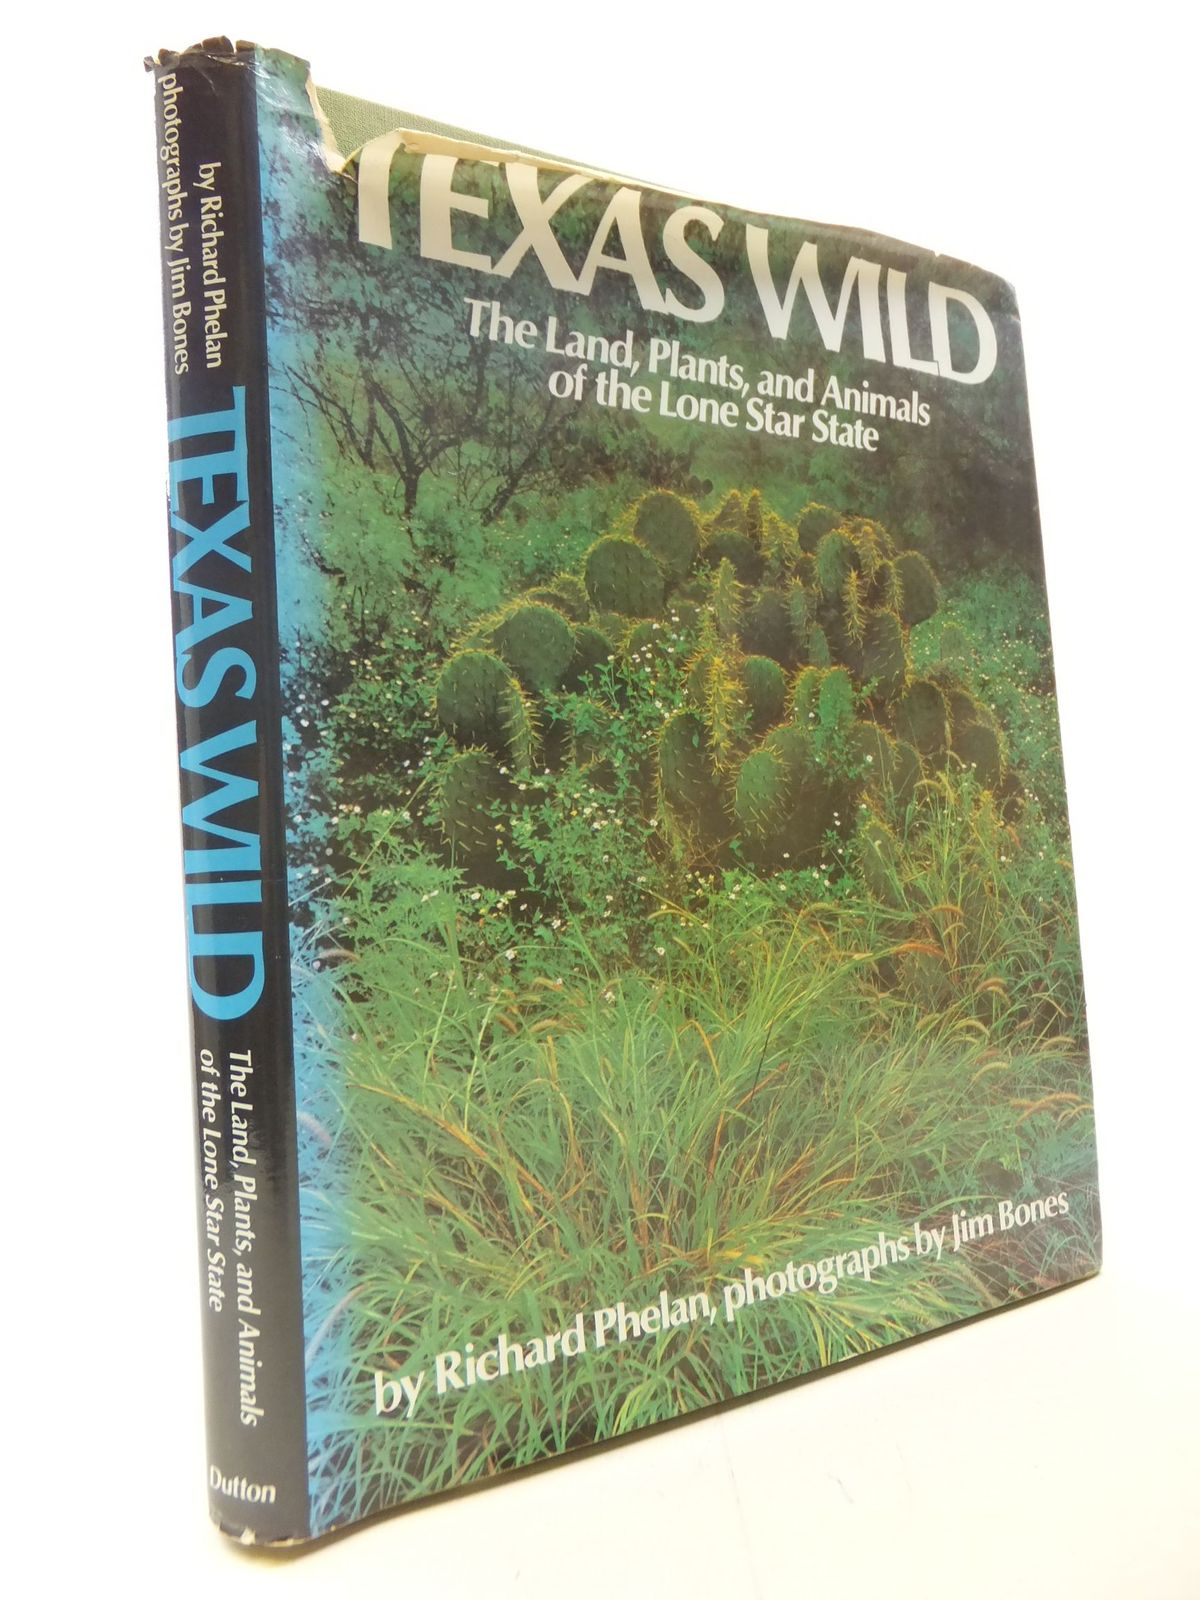 Photo of TEXAS WILD THE LAND, PLANTS, AND ANIMALS OF LONE STAR STATE written by Phelan, Richard published by E.P. Dutton & Co. Inc. (STOCK CODE: 1711300)  for sale by Stella & Rose's Books